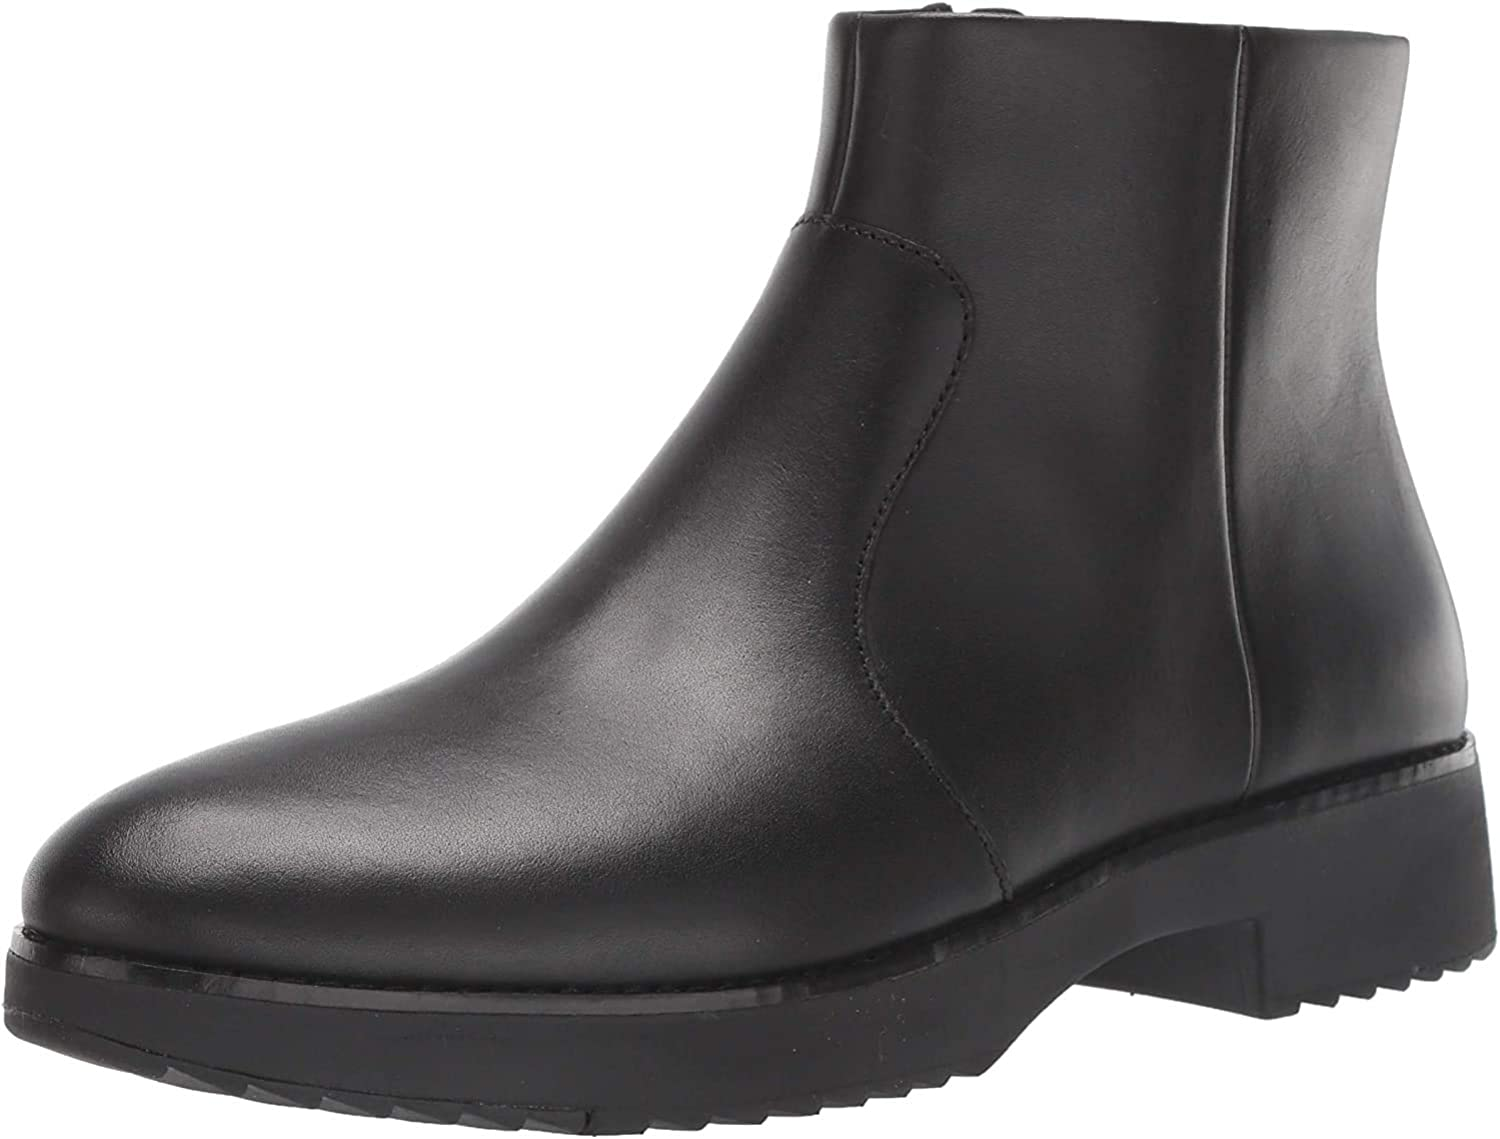 Fitflop Maria Welted Ankle Bootie-Leather, Botines Mujer